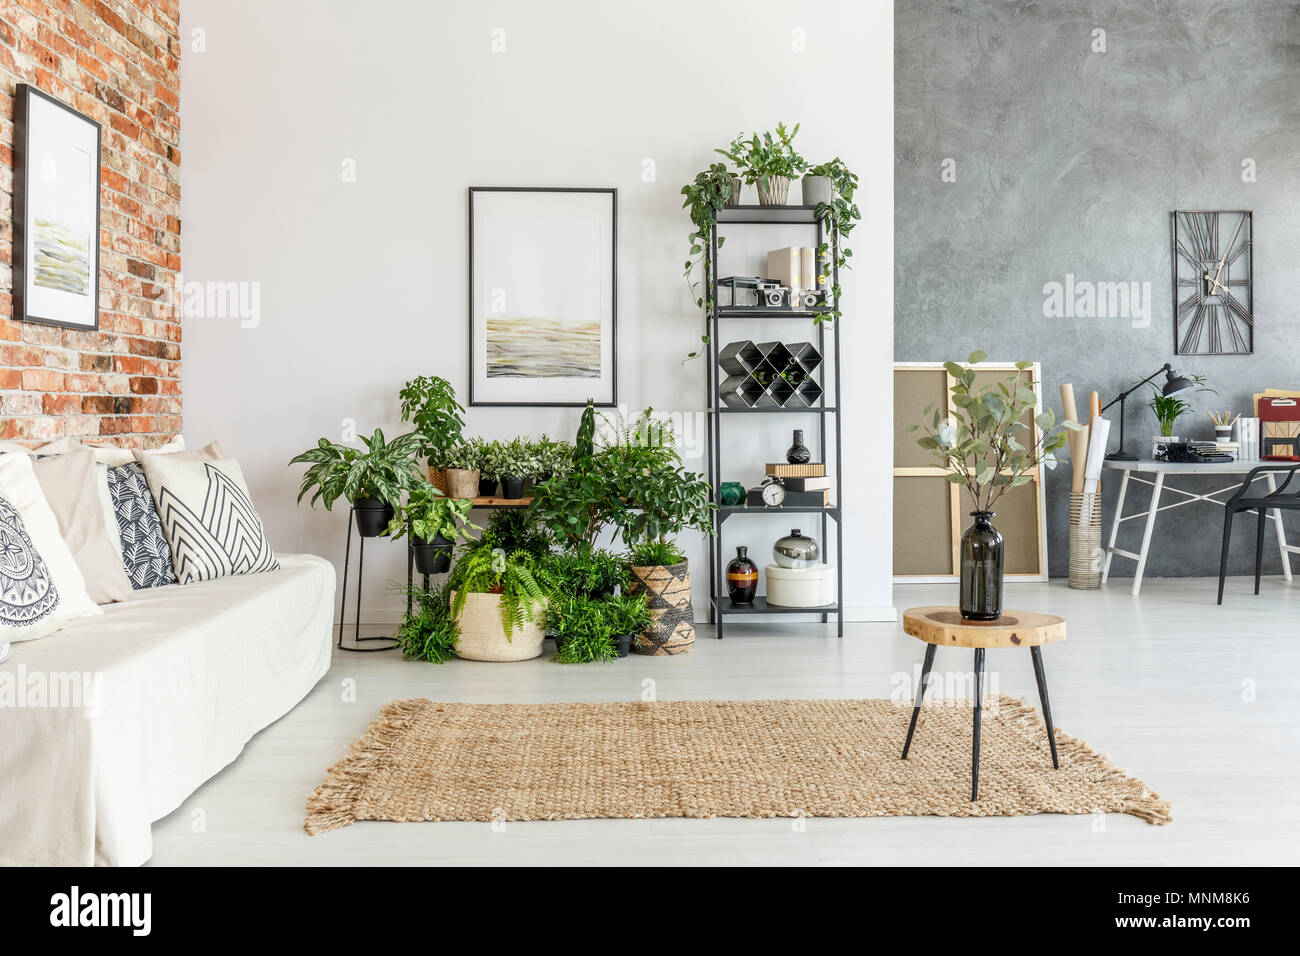 Open space living room on brick wall with  plants and modern study space - Stock Image